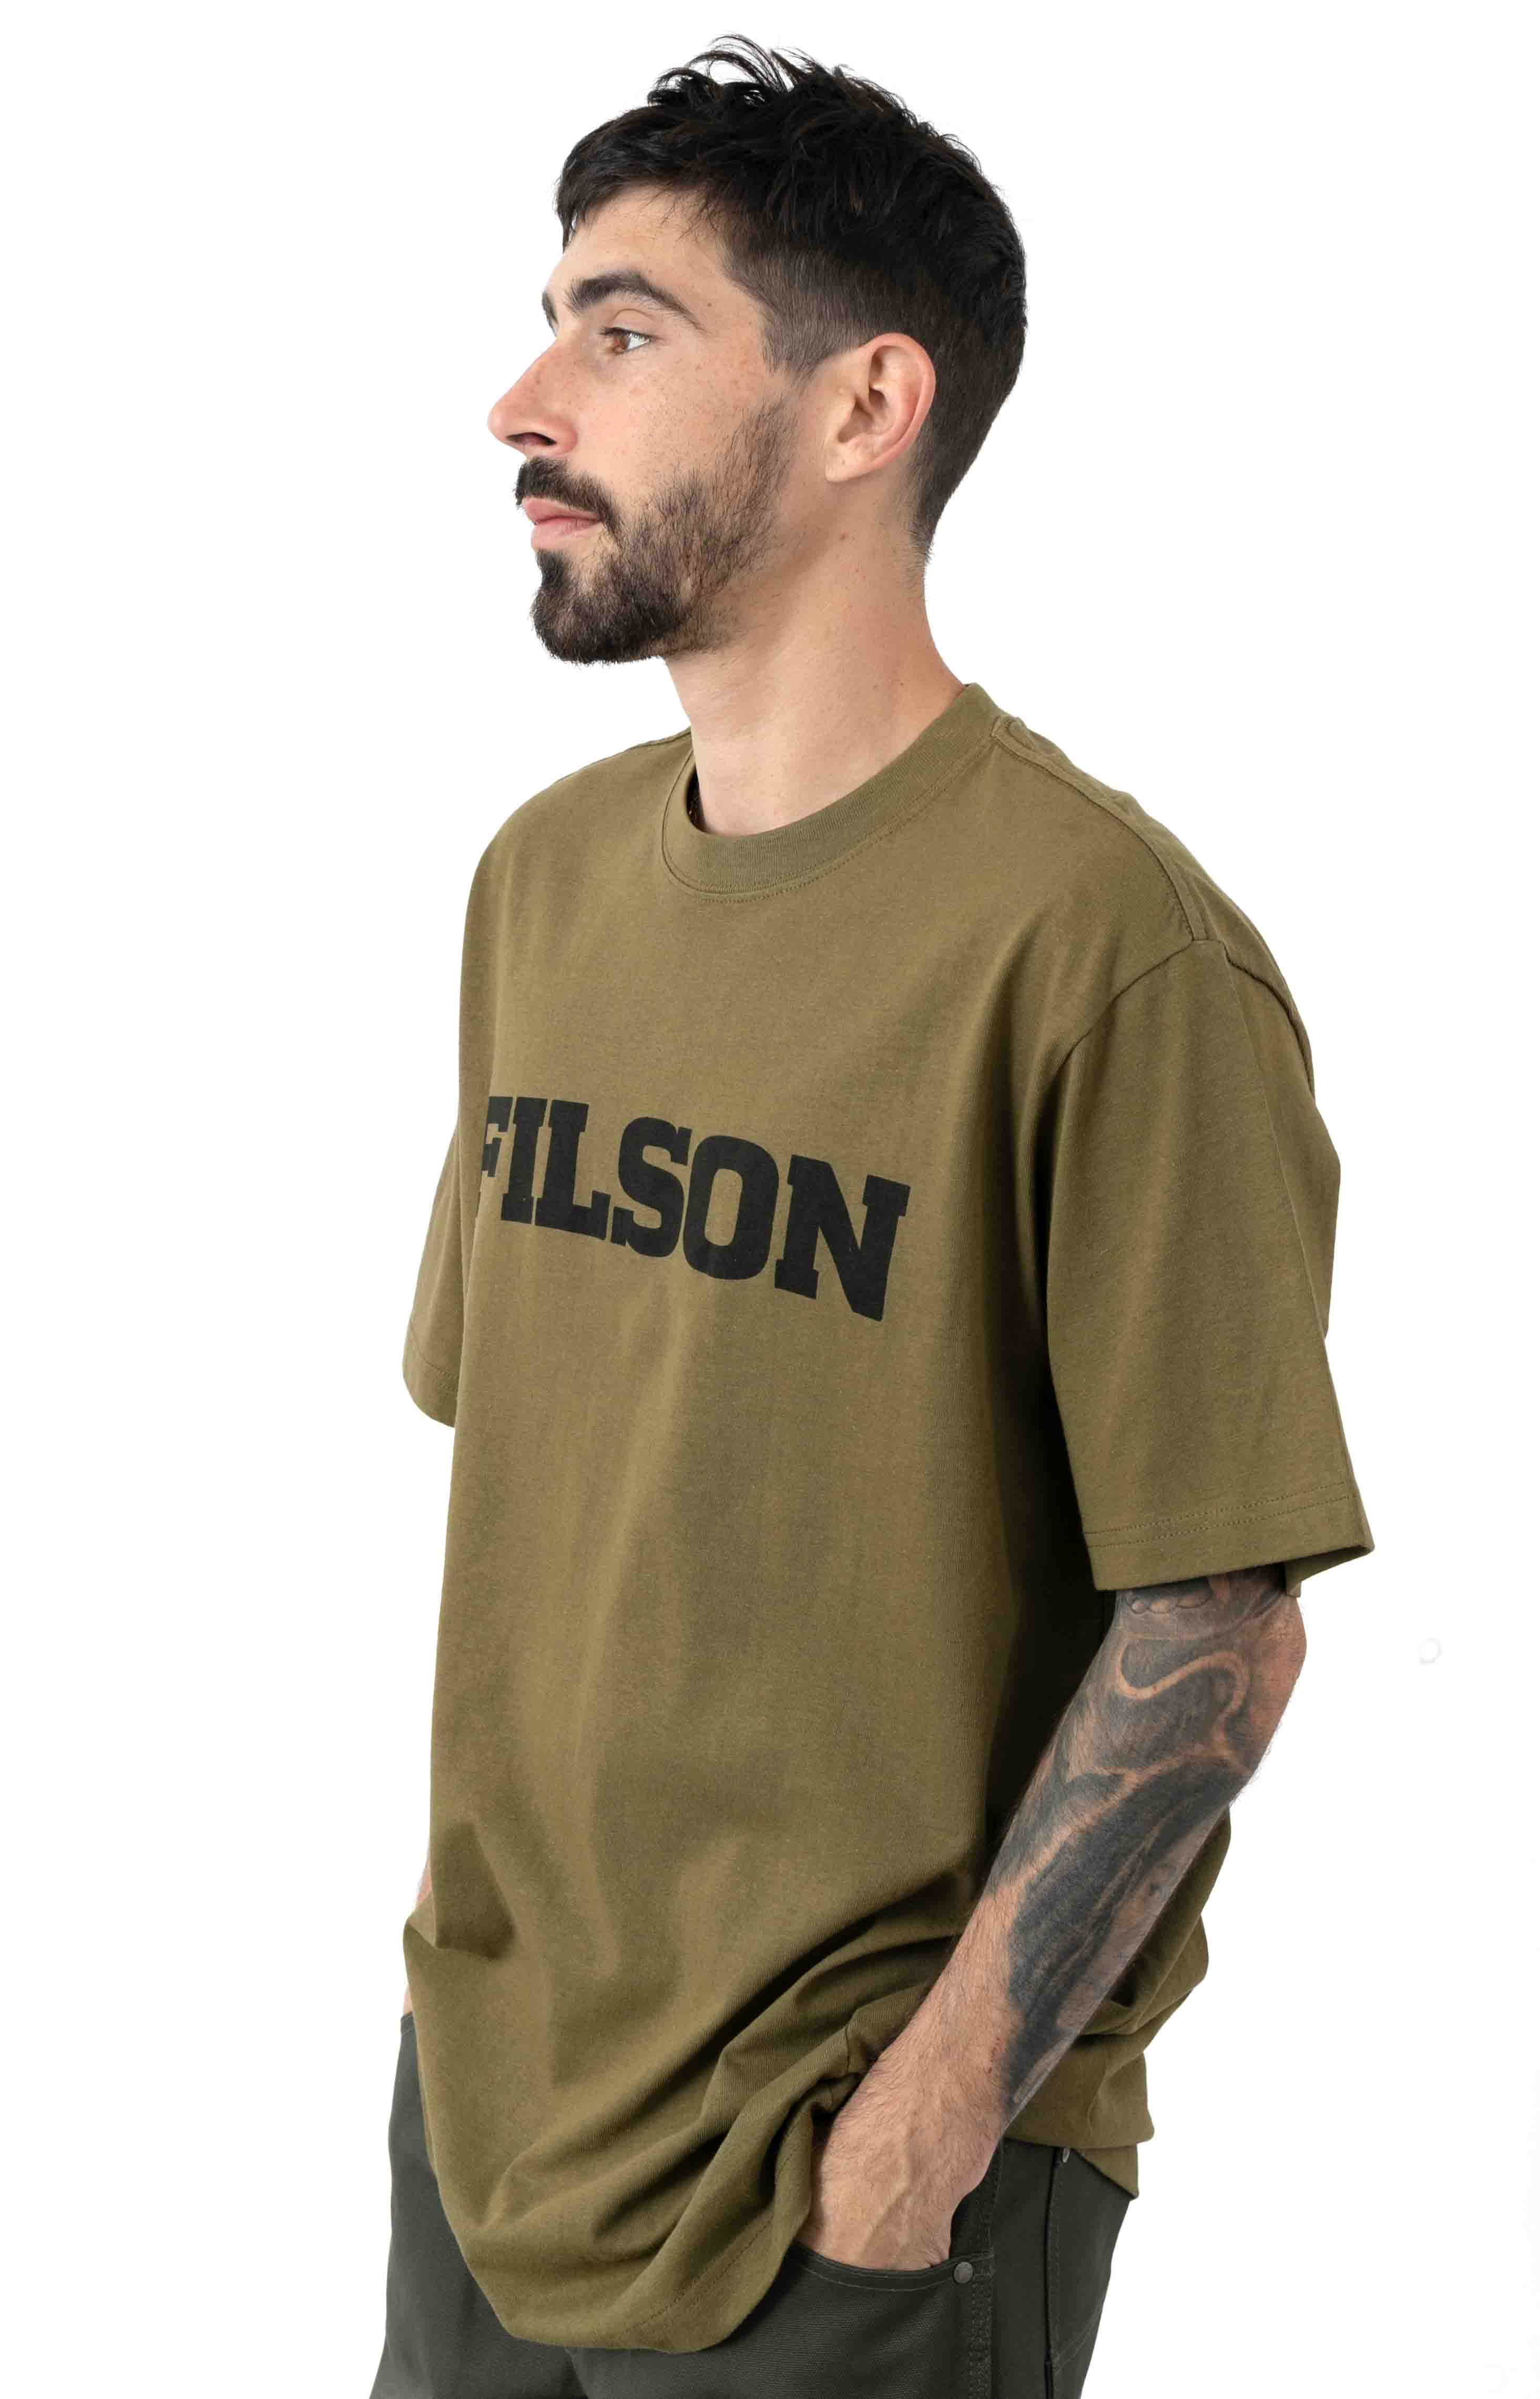 S/S Outfitter Graphic T-Shirt - Olive Drab  2